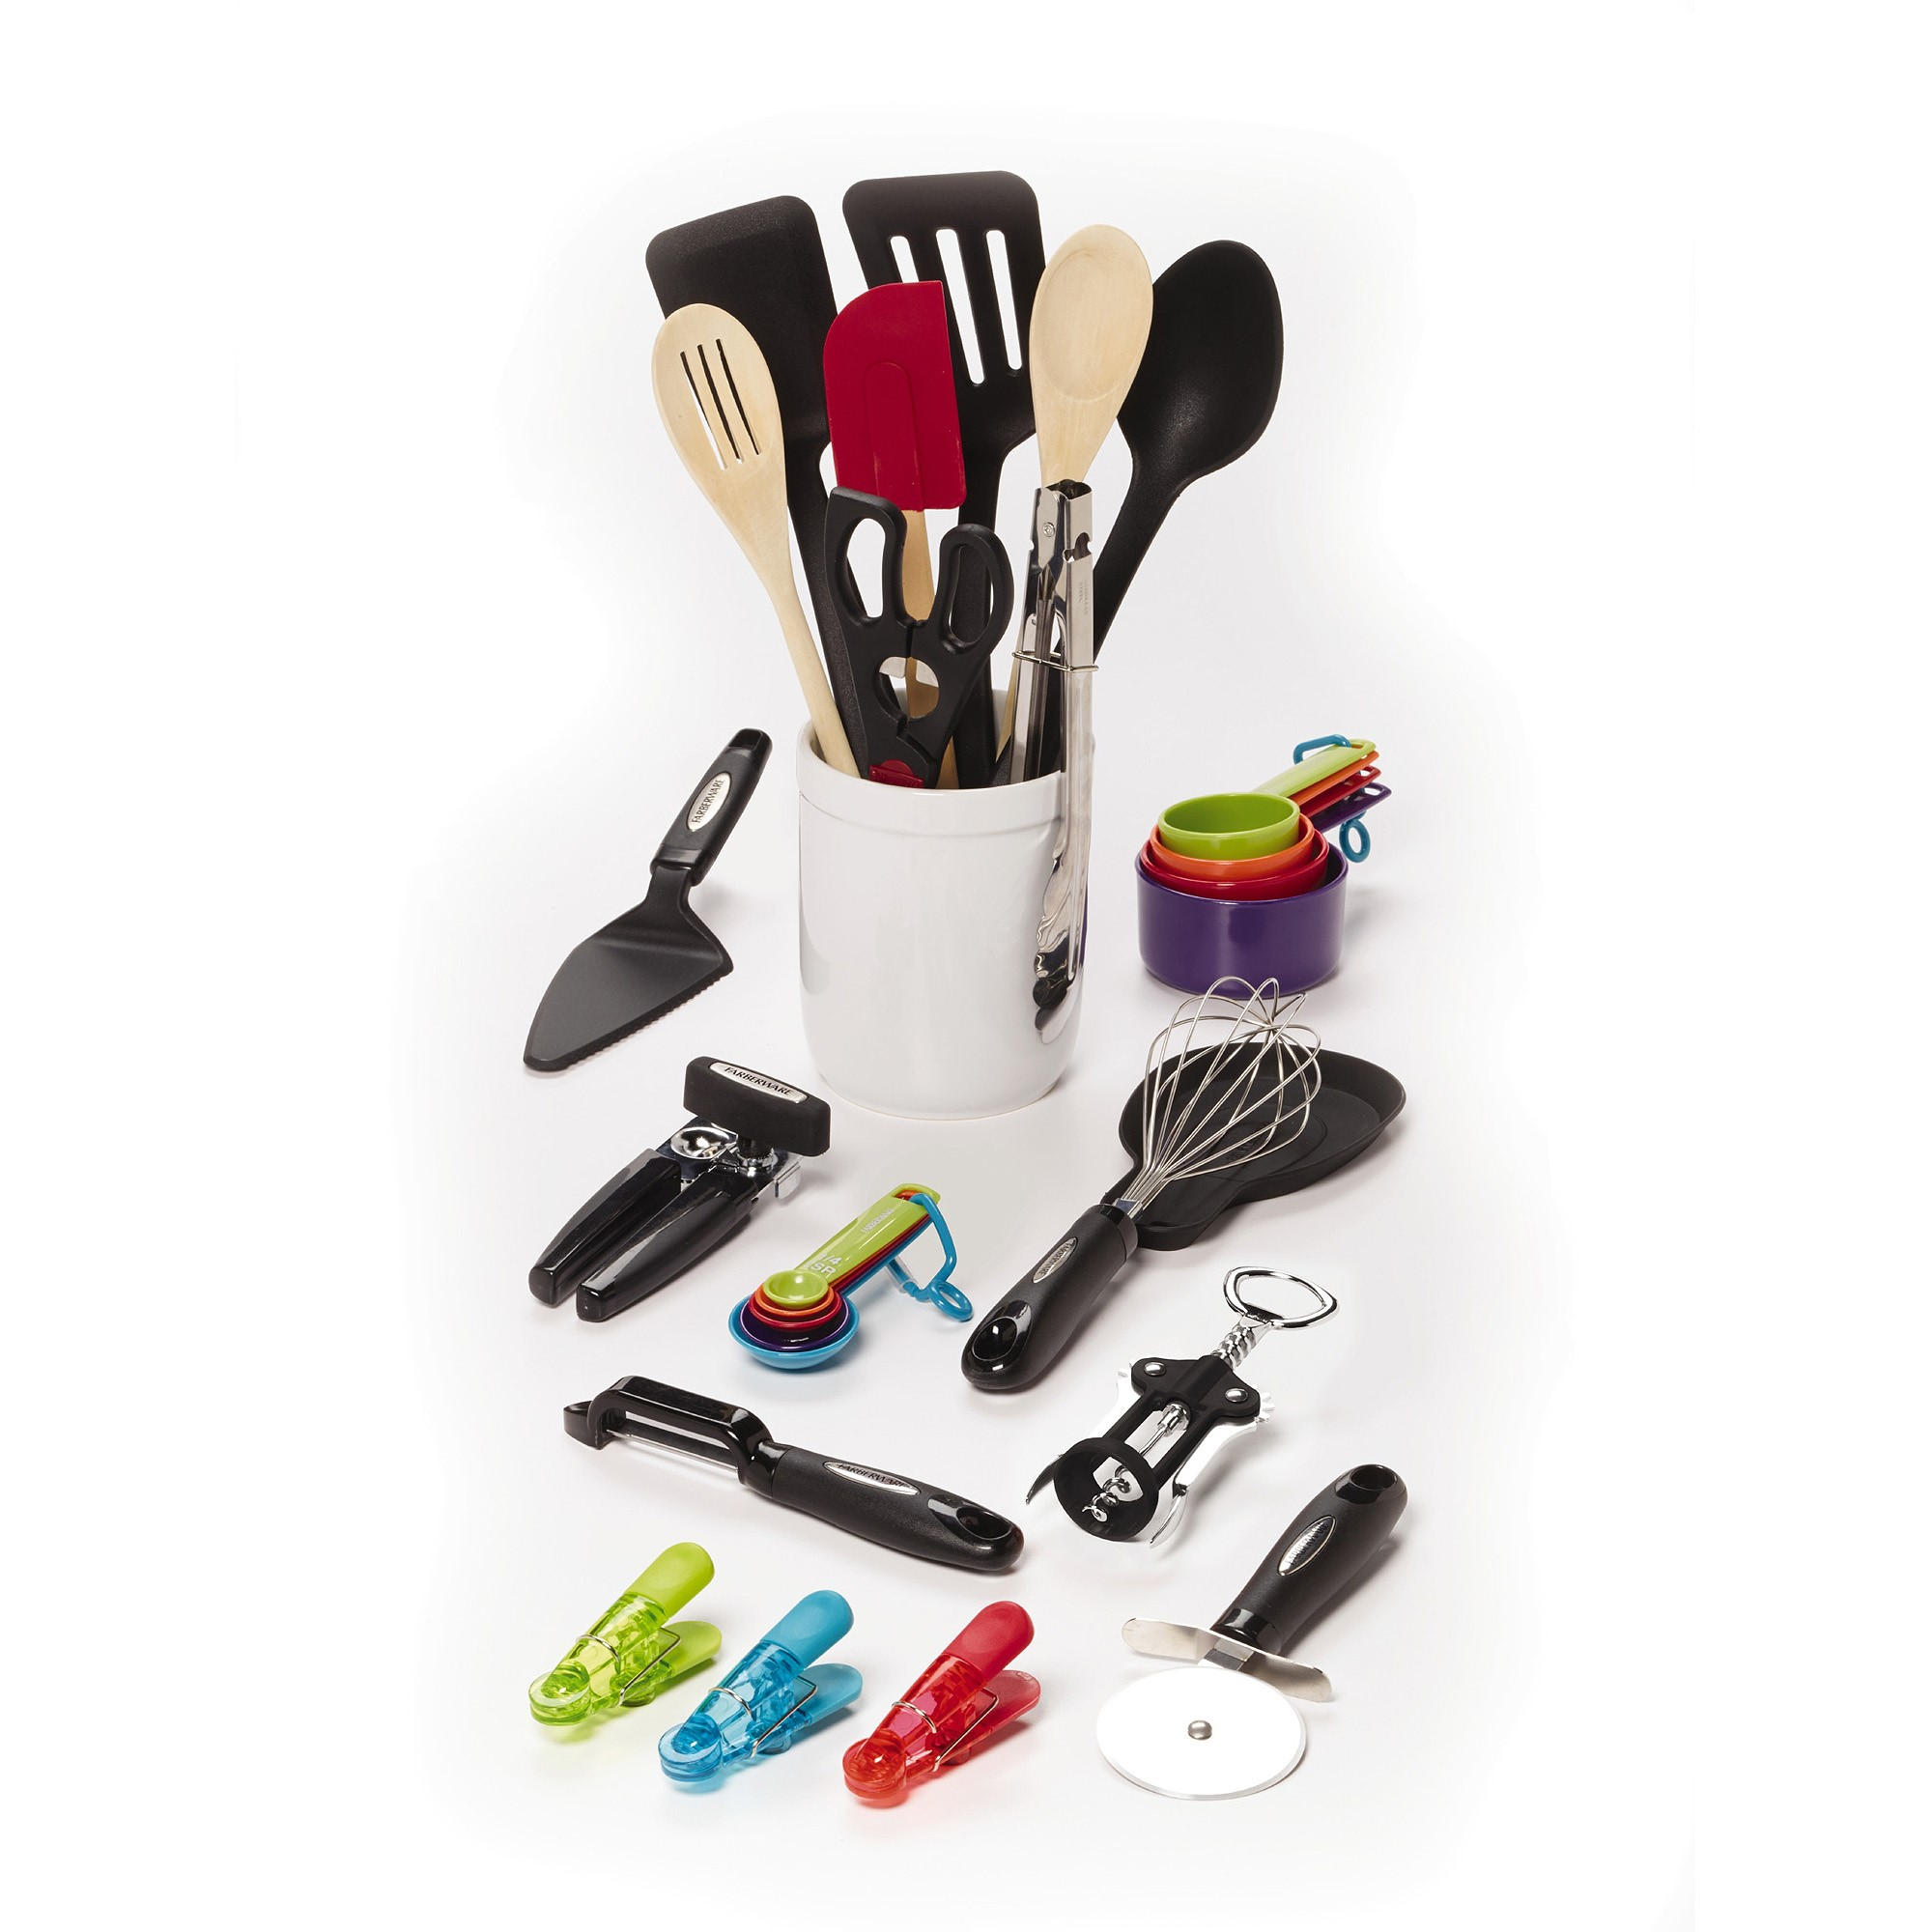 Farberware 28-Piece Kitchen Tool and Gadget Set